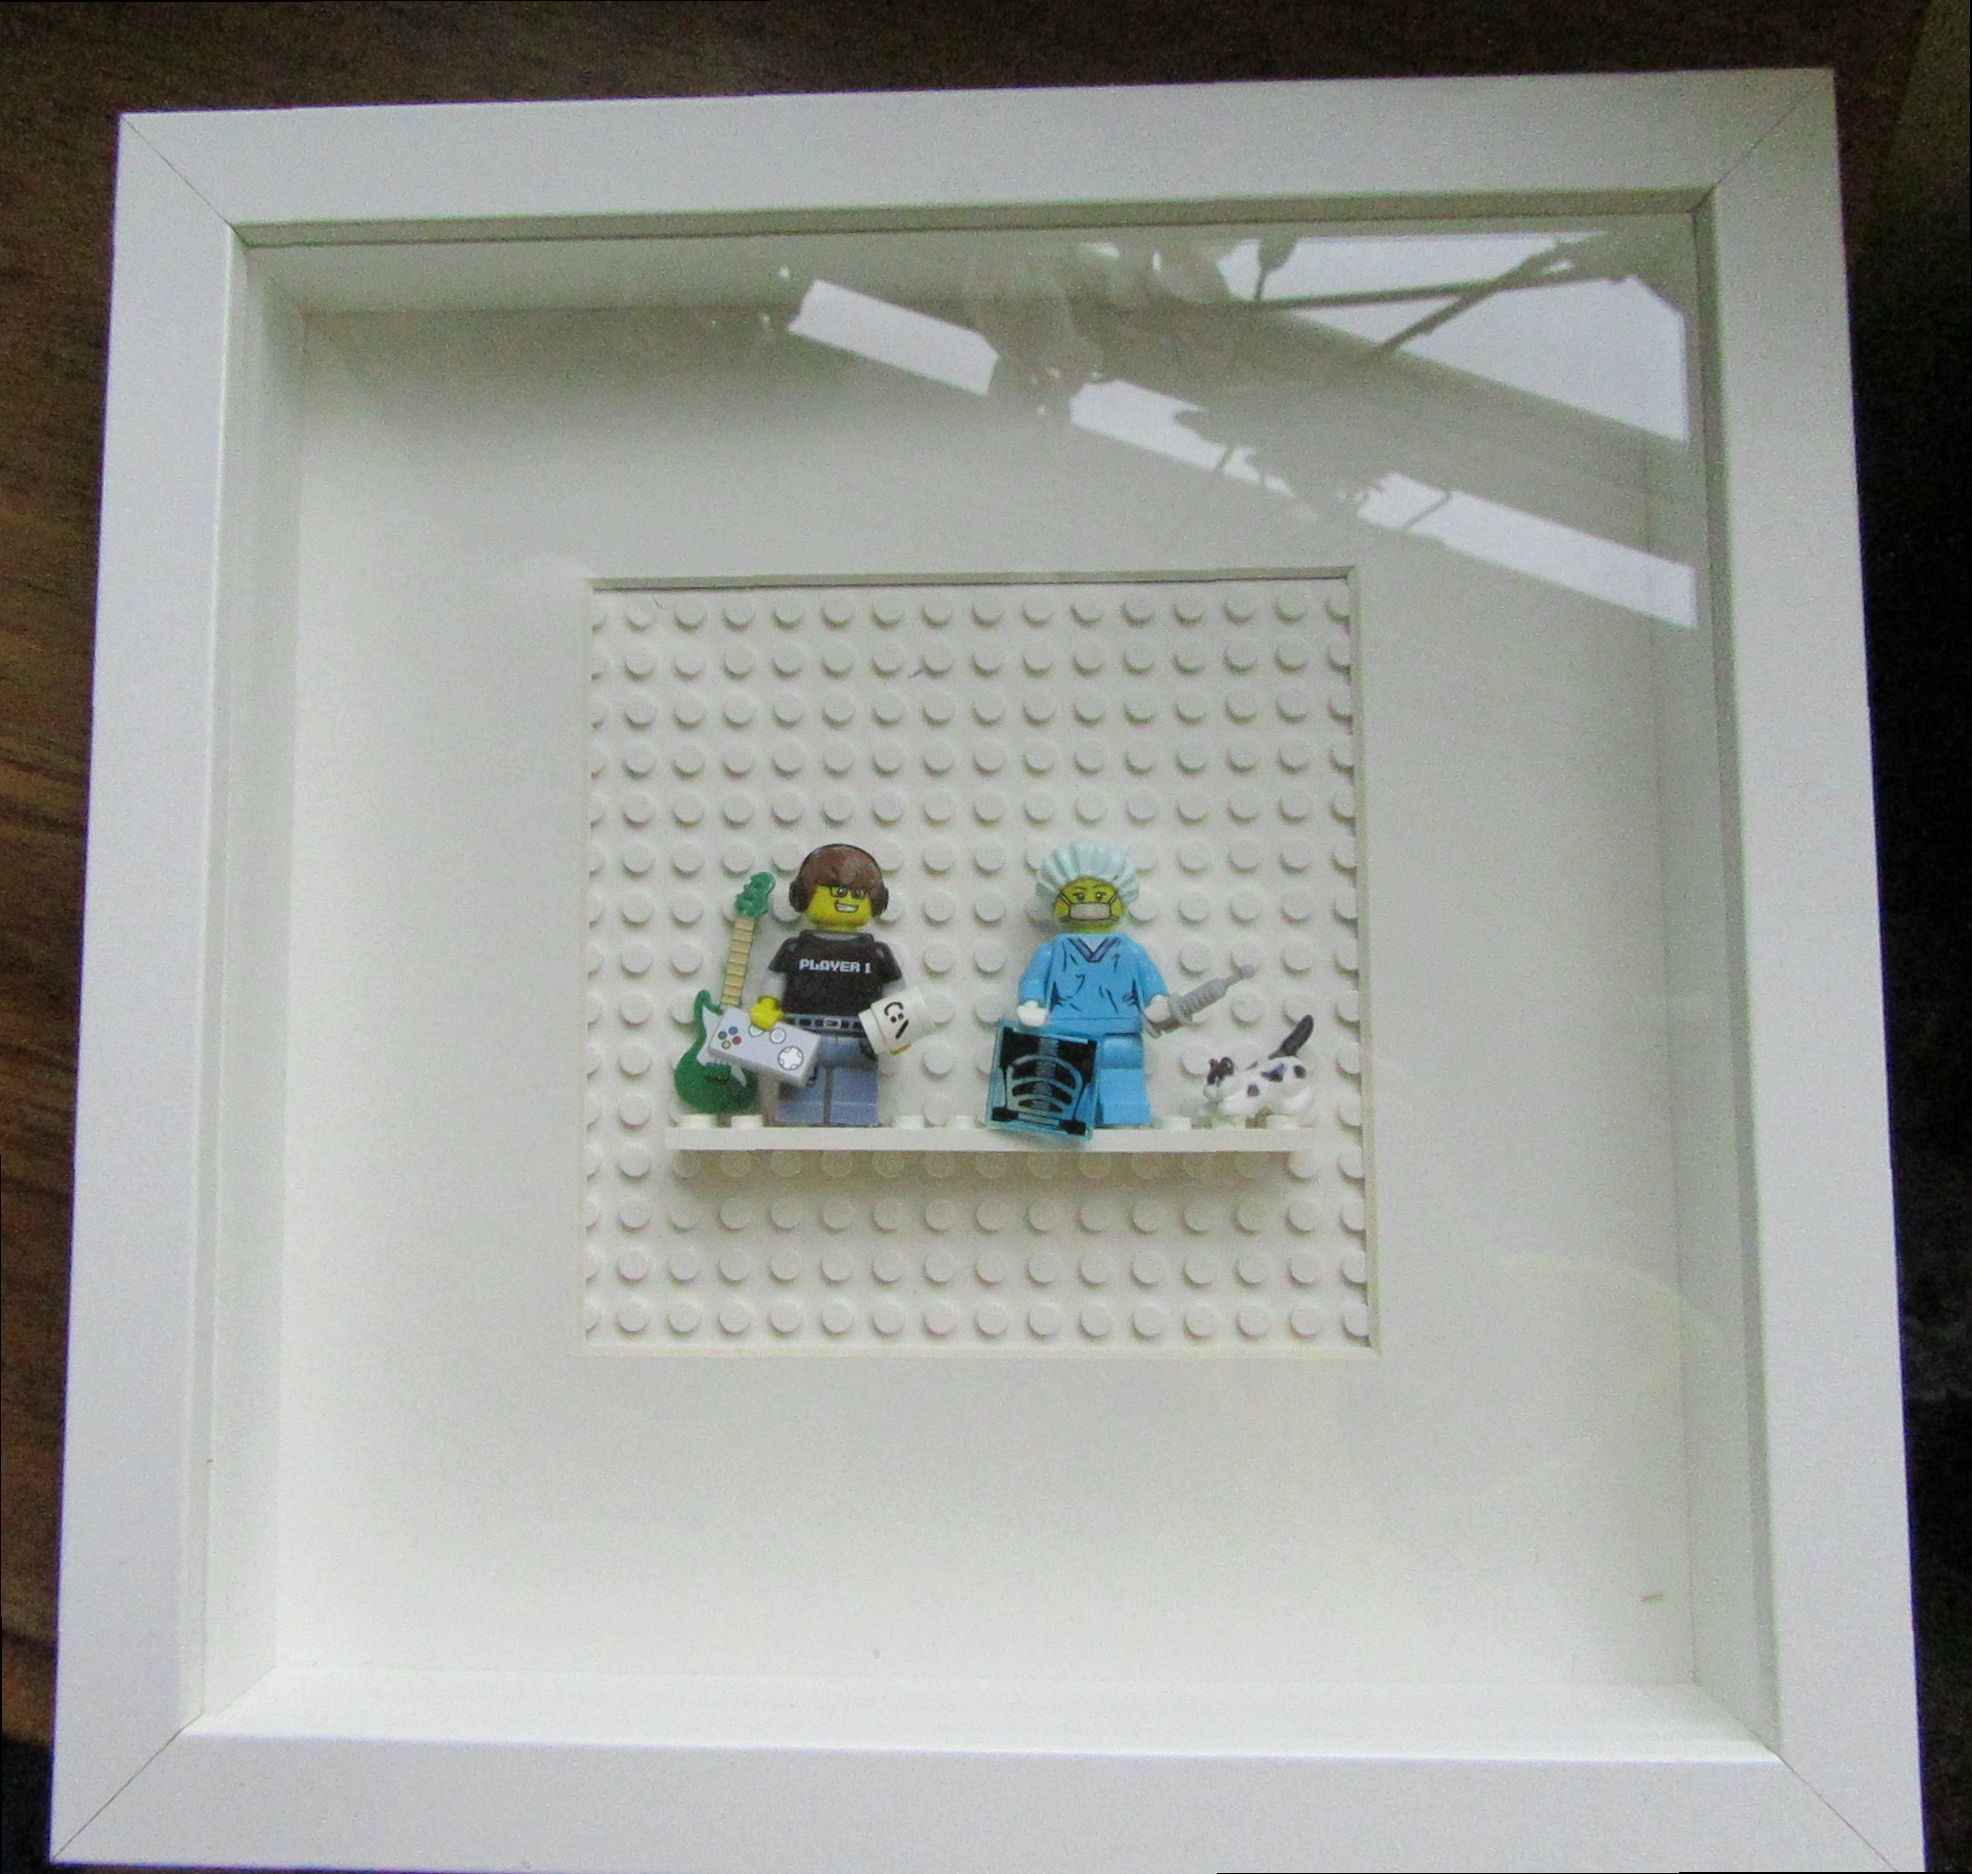 Explore Lego Wall Art, Things To Make And More!